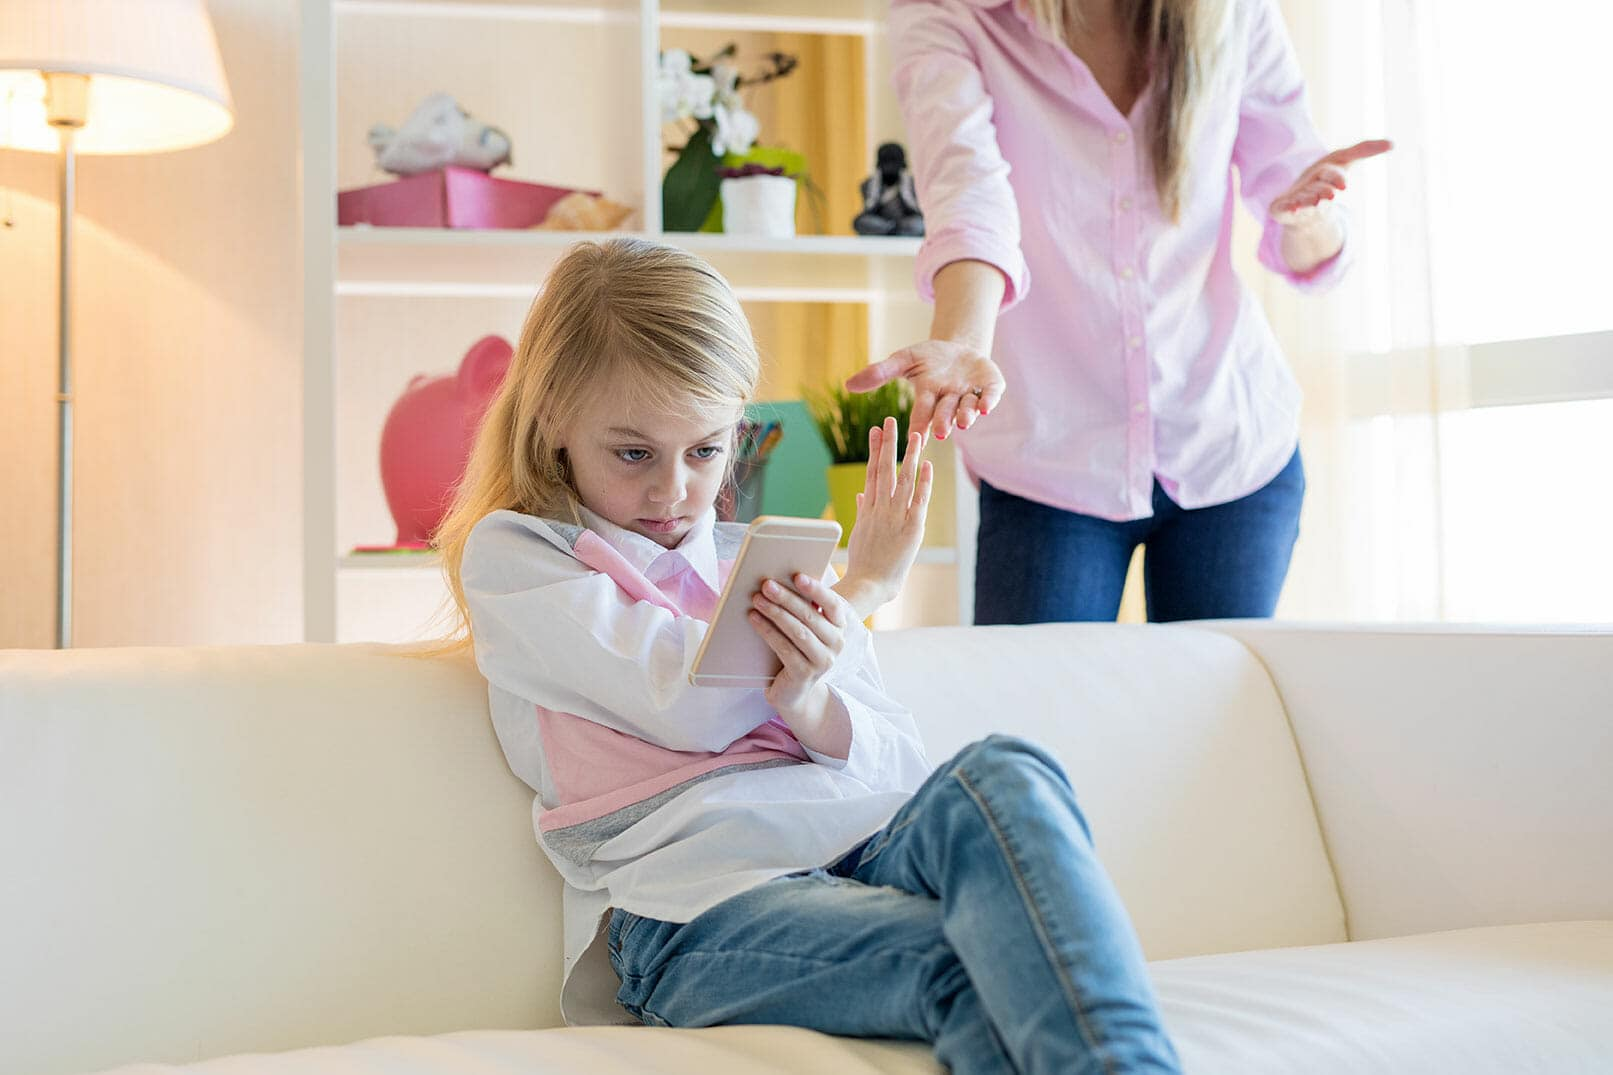 Adverse Affects of Technology on Family.